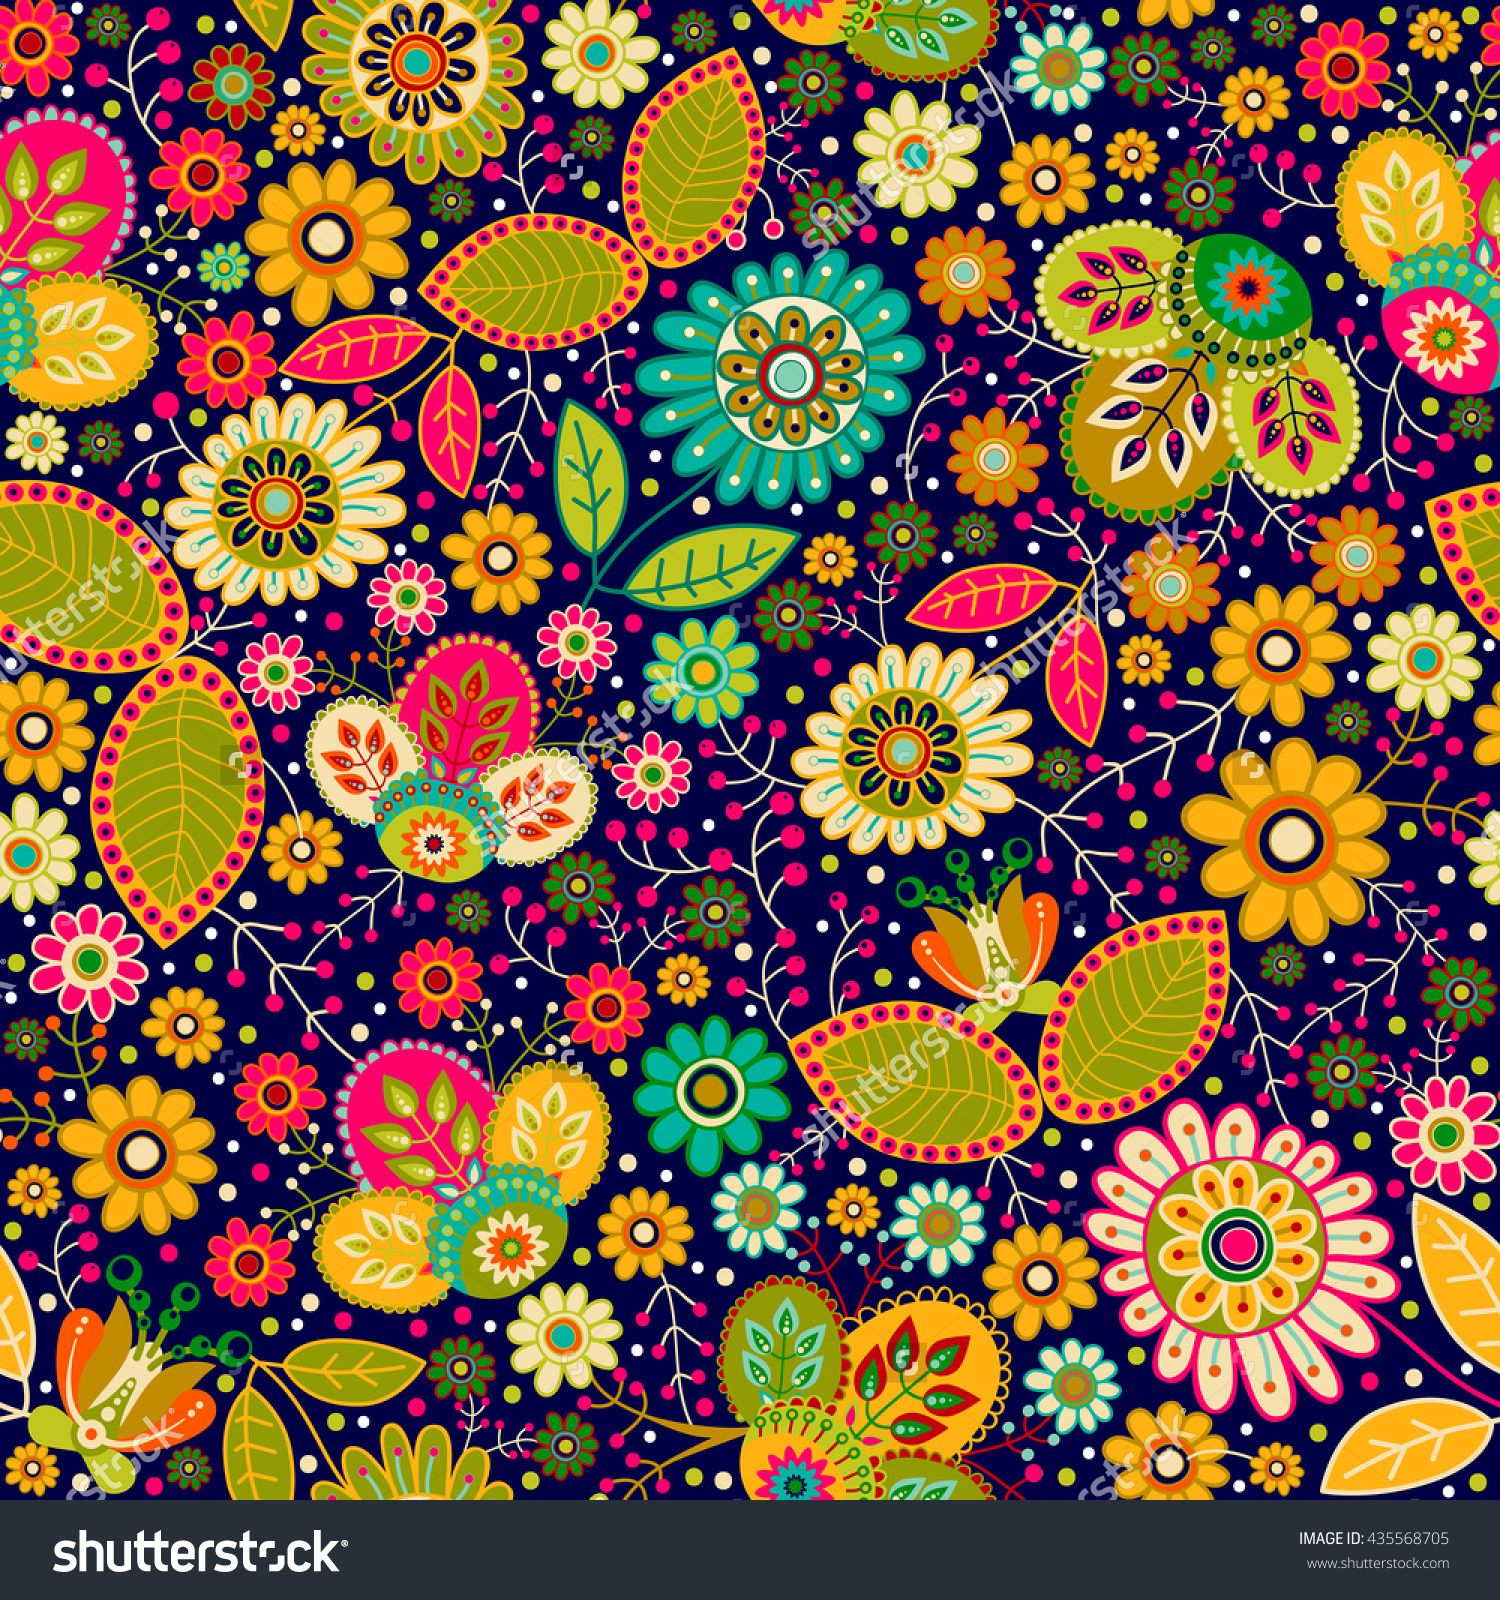 Colorful Seamless Floral Pattern Bright Summer Backdrop Flowers Wallpaper Floral Pattern Flower Wallpaper Stock Illustration